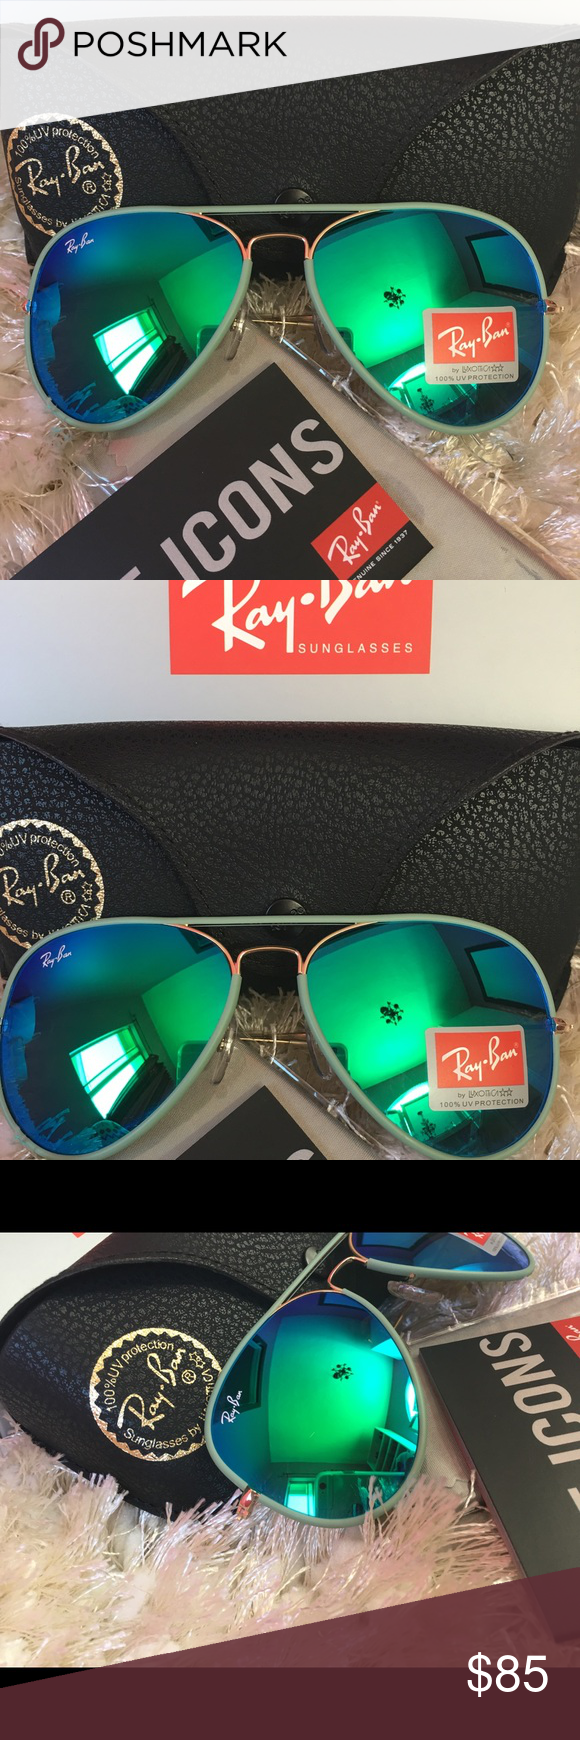 09bcc2e602 AUTHENTIC RAY BAN AVIATOR 3026 PRODUCT DETAILS Model code  RB3026 L2846 62- 14 Inspired